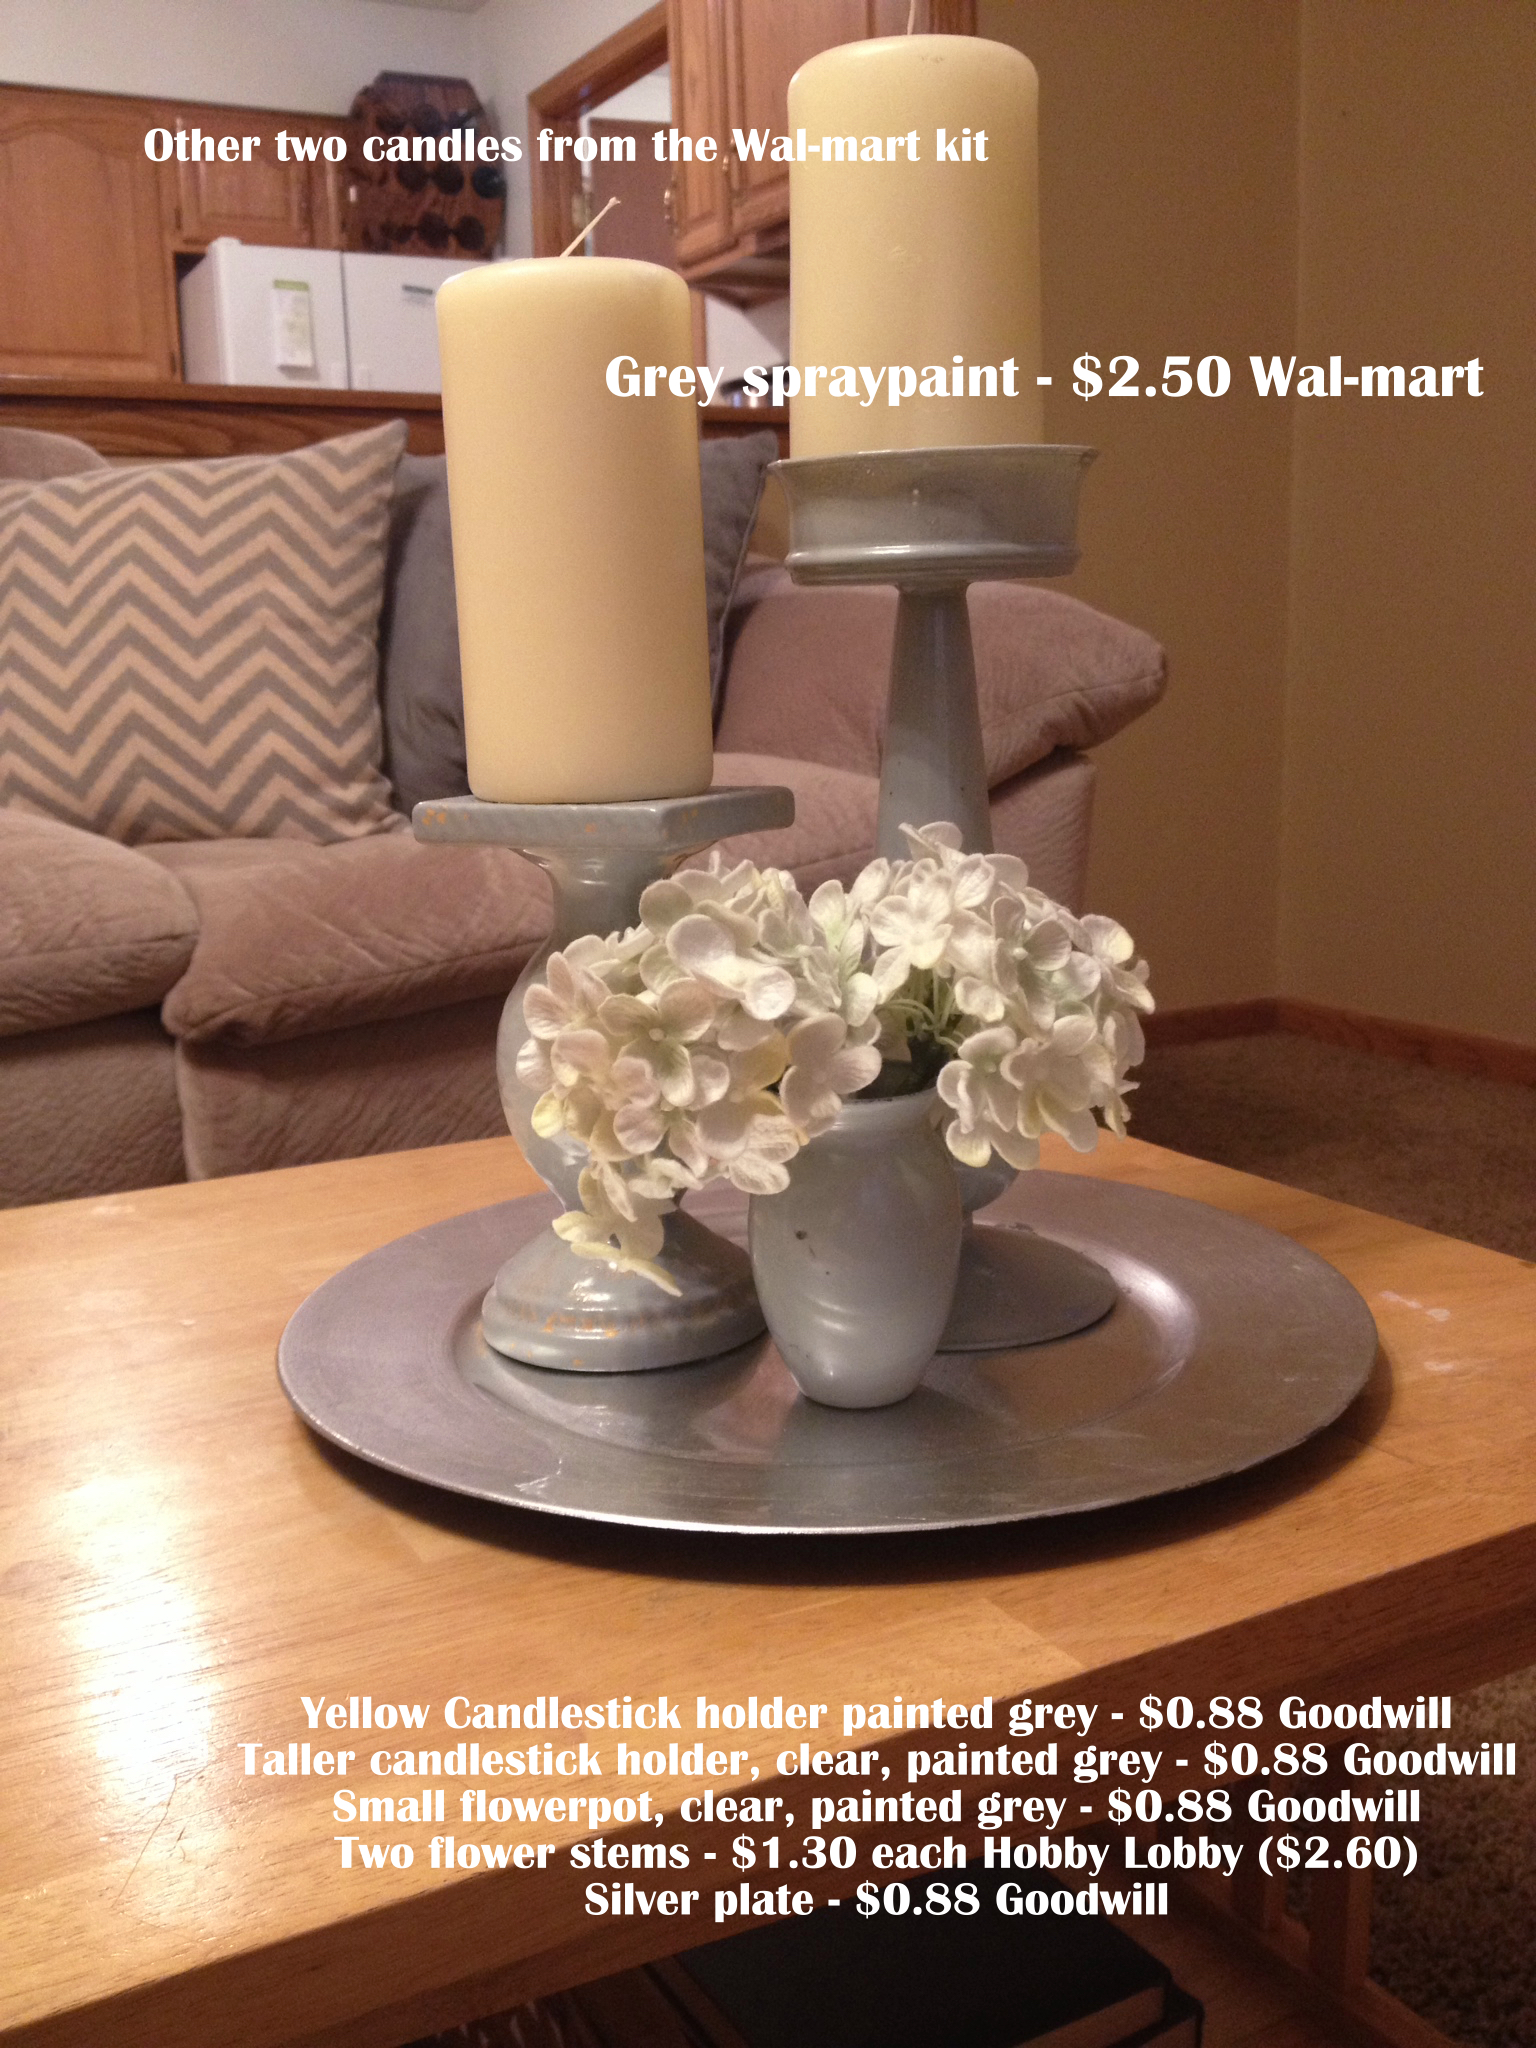 Remote Control Holder For Coffee Table Update Your Living Room With Under 80 Fairly Chic